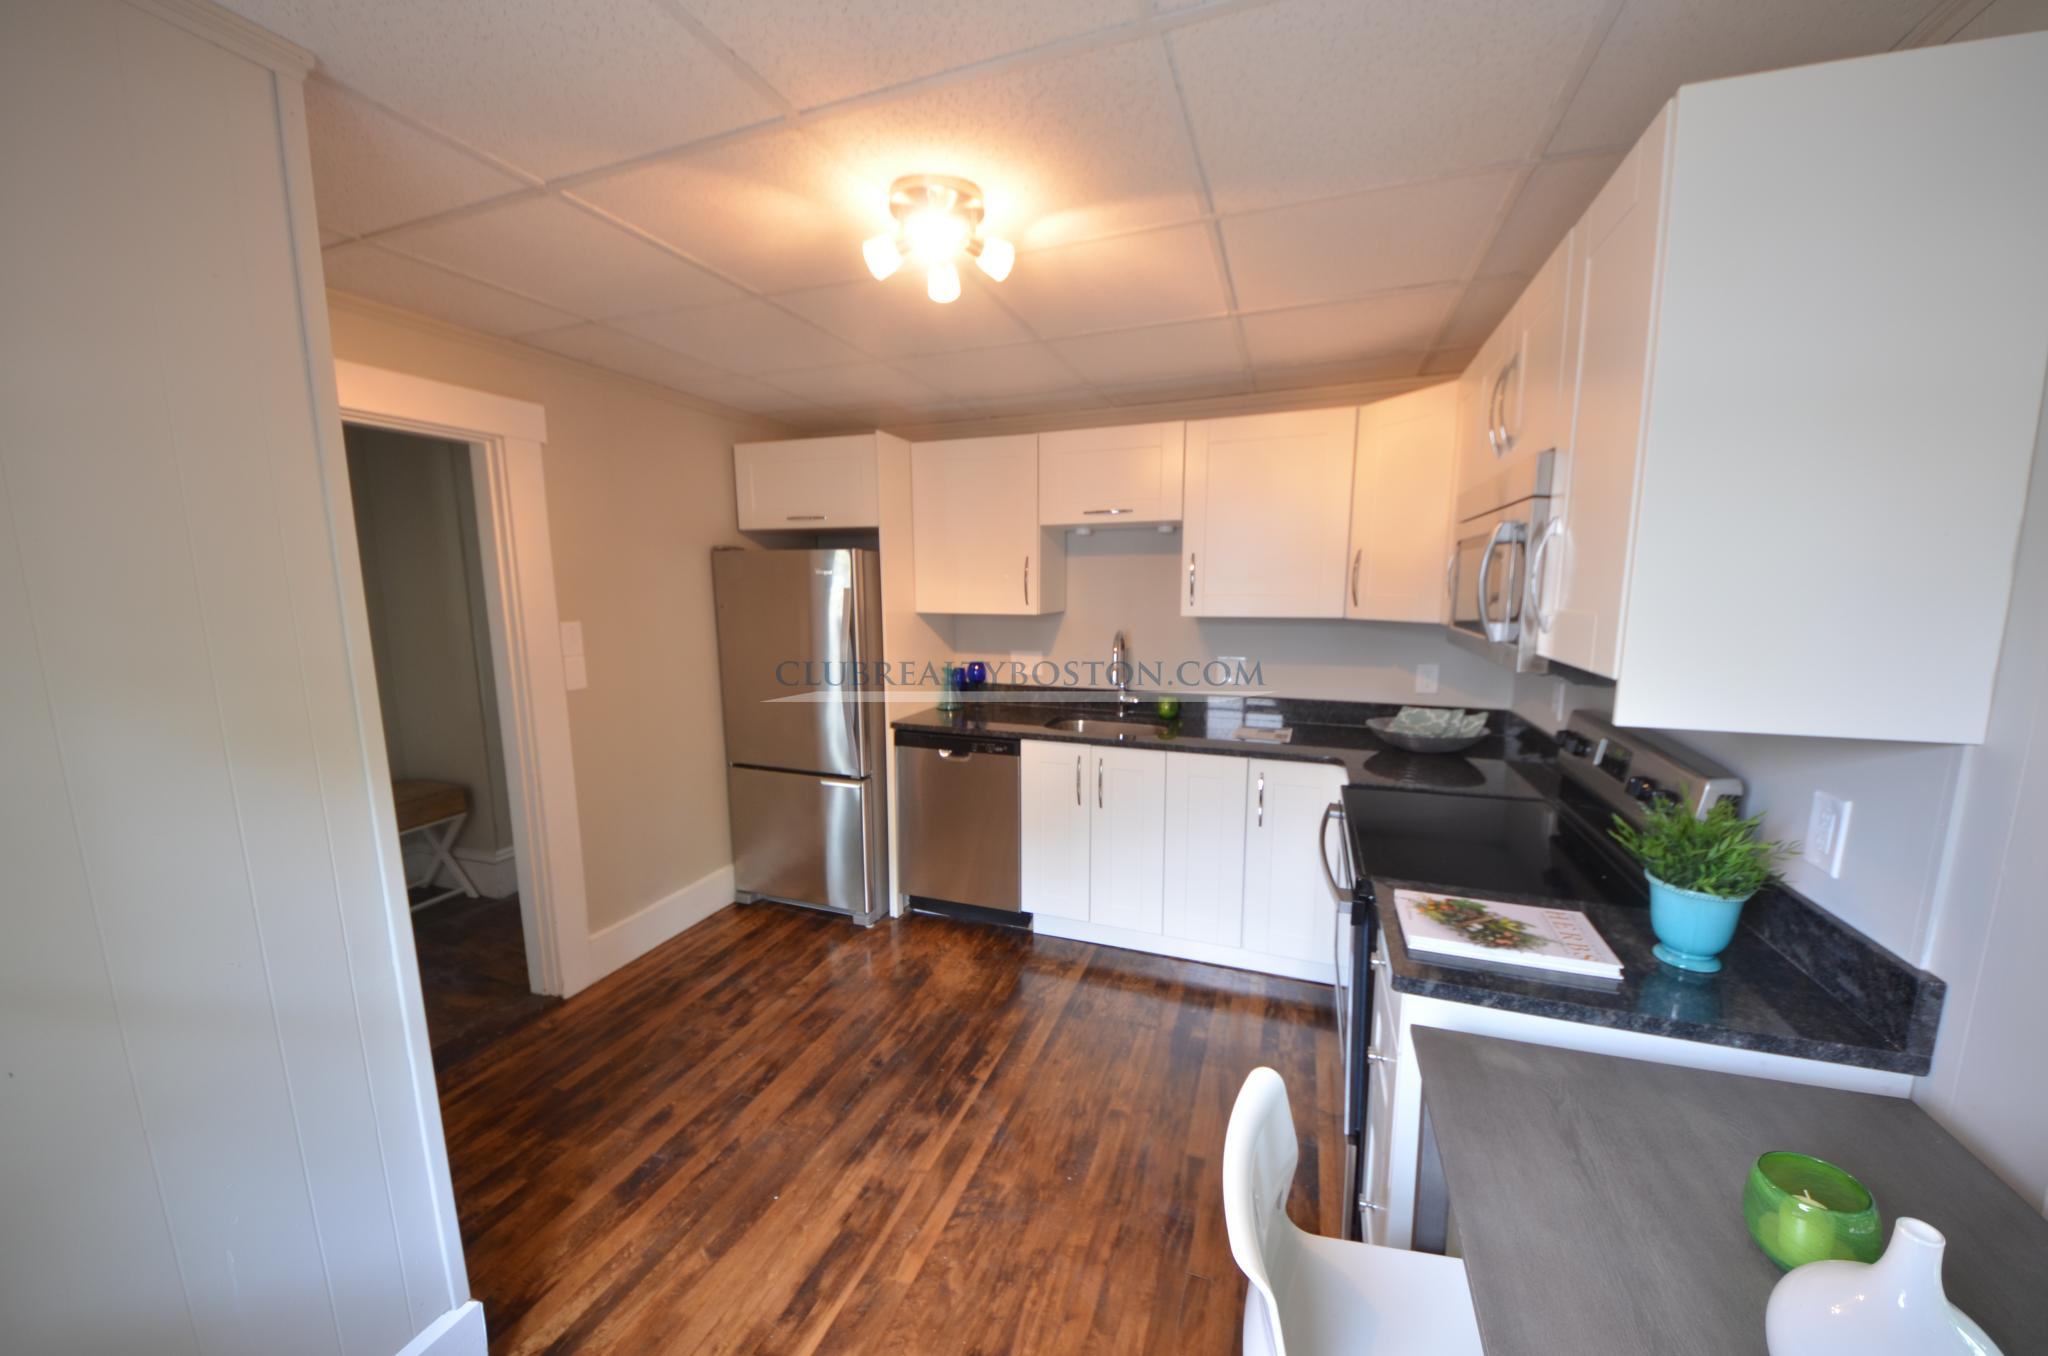 Room for rent in Luxury 4 bed in South Waltham~Granite & Stainless Kit